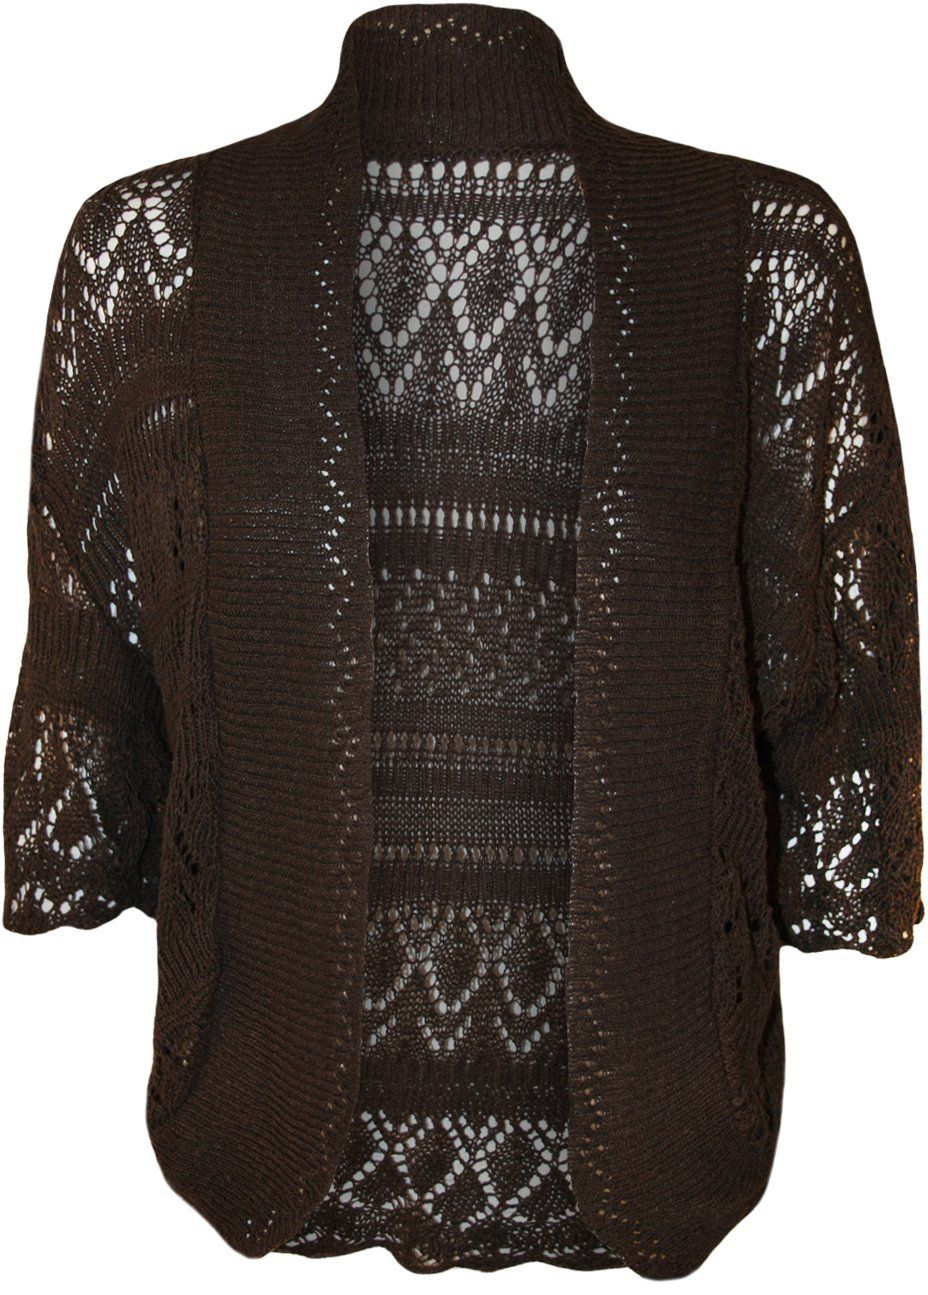 PaperMoon Women's Plus Size Crochet Knitted Short Sleeve Cardigan ...